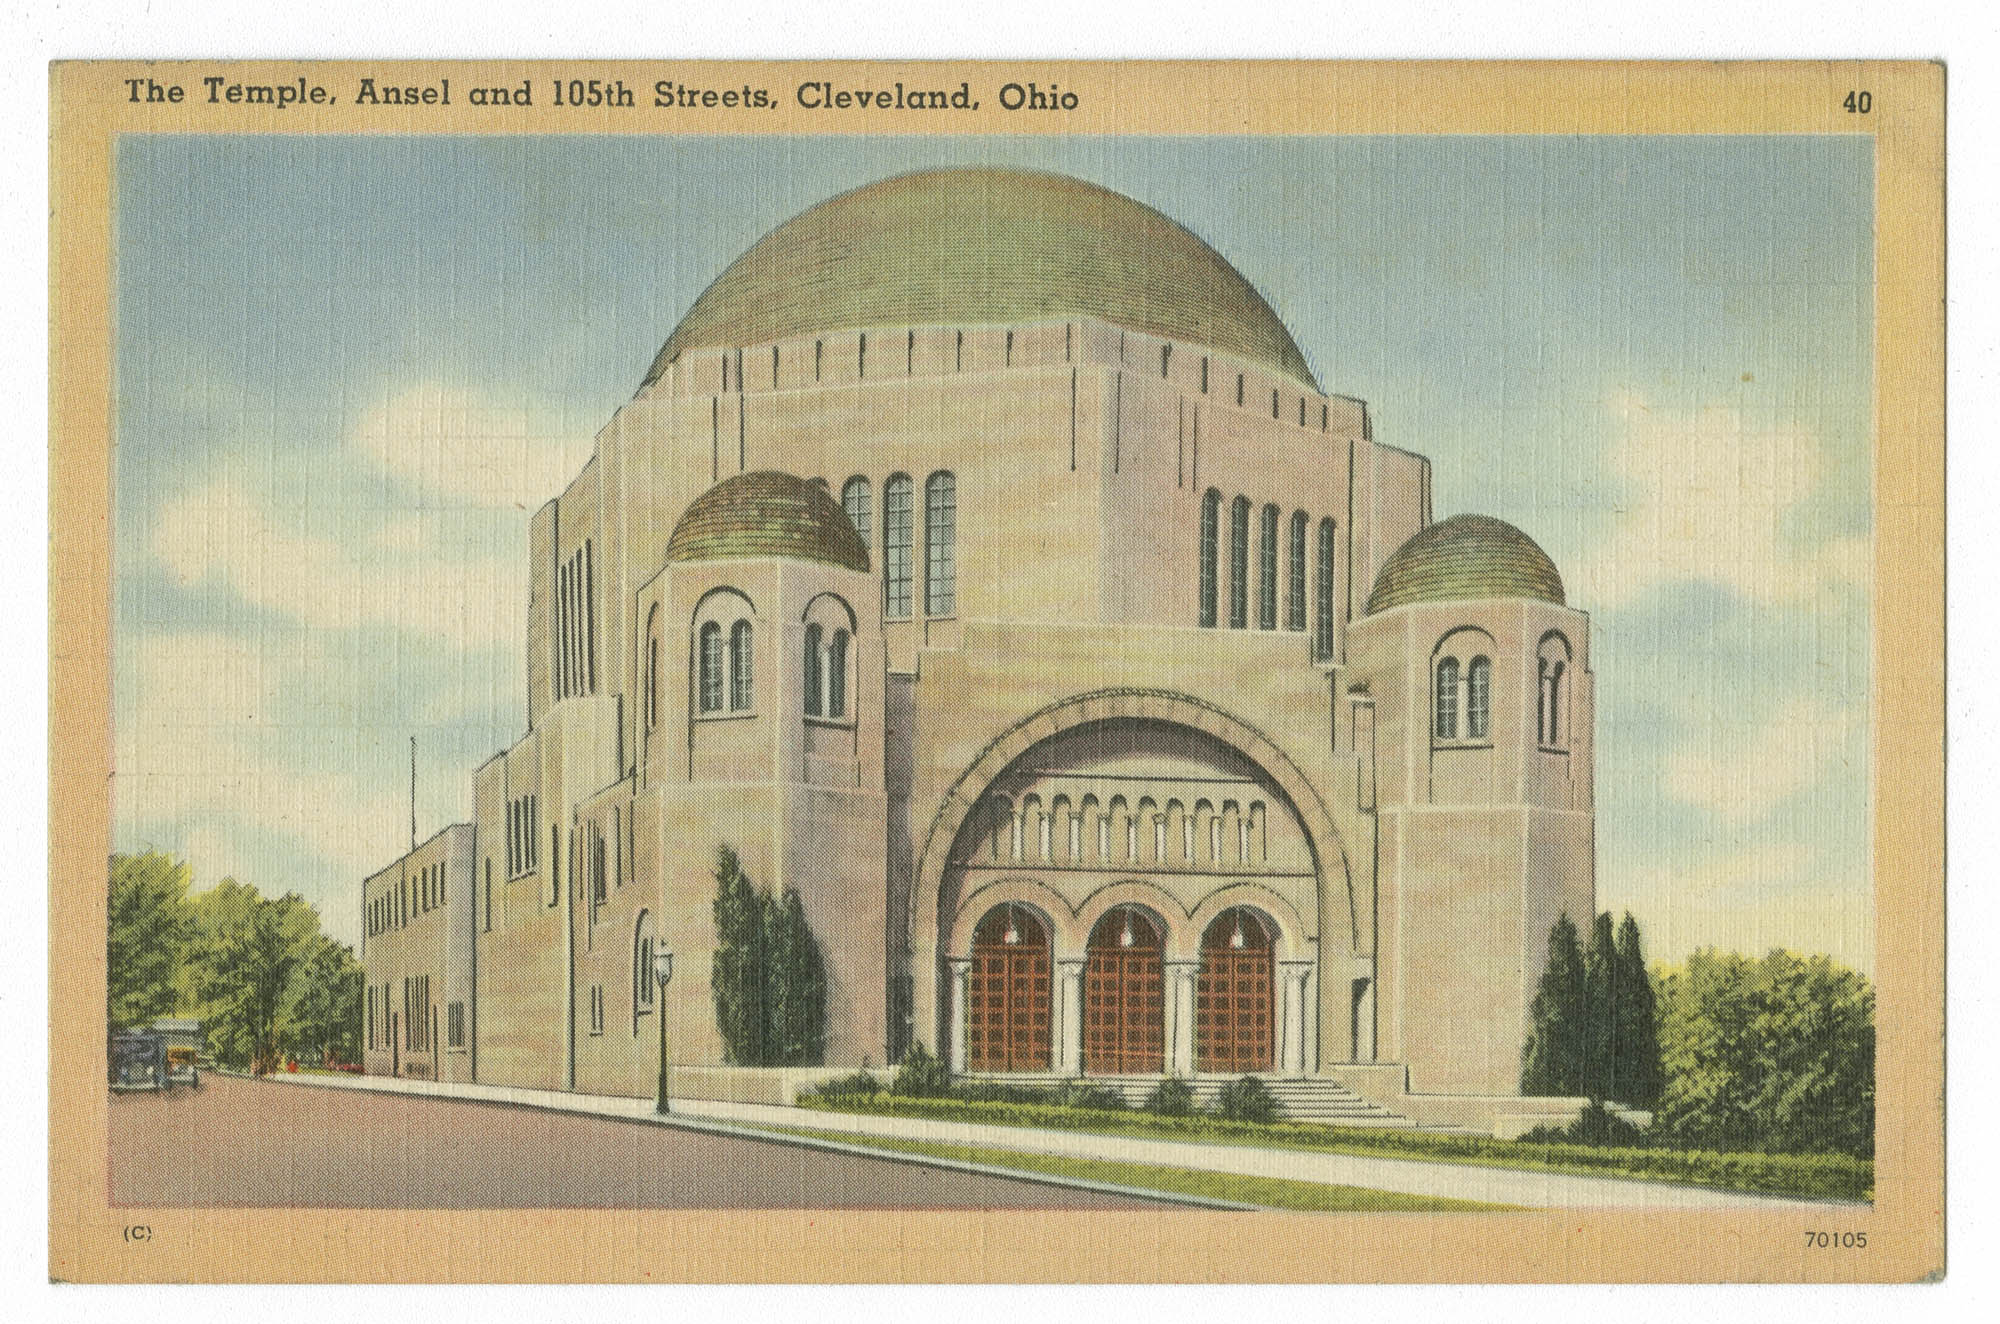 The Temple, Ansel and 105th Streets, Cleveland, Ohio